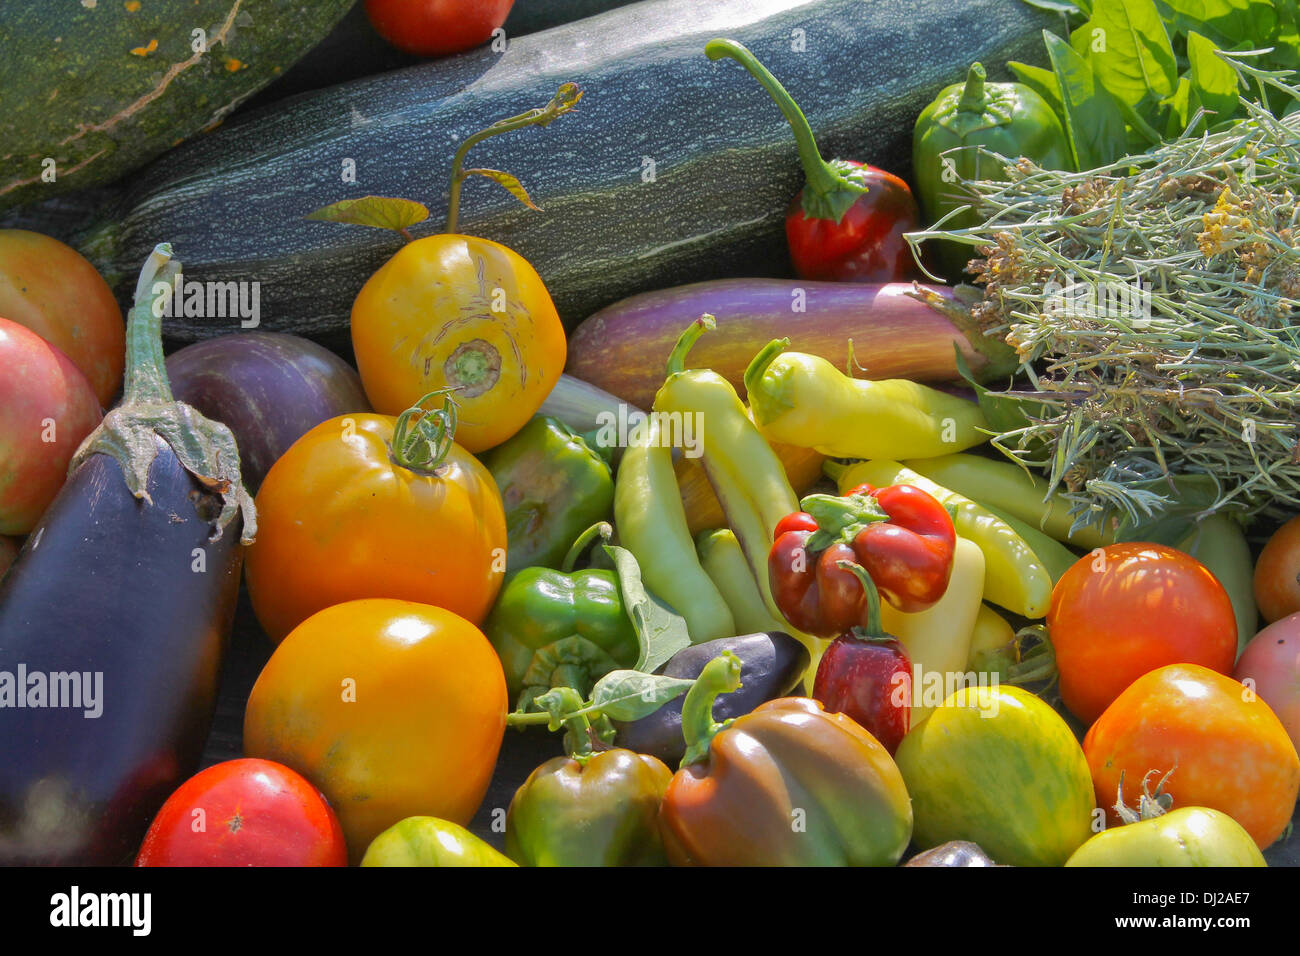 Horizontal orientation of Fall Harvest Vegetables - Stock Image